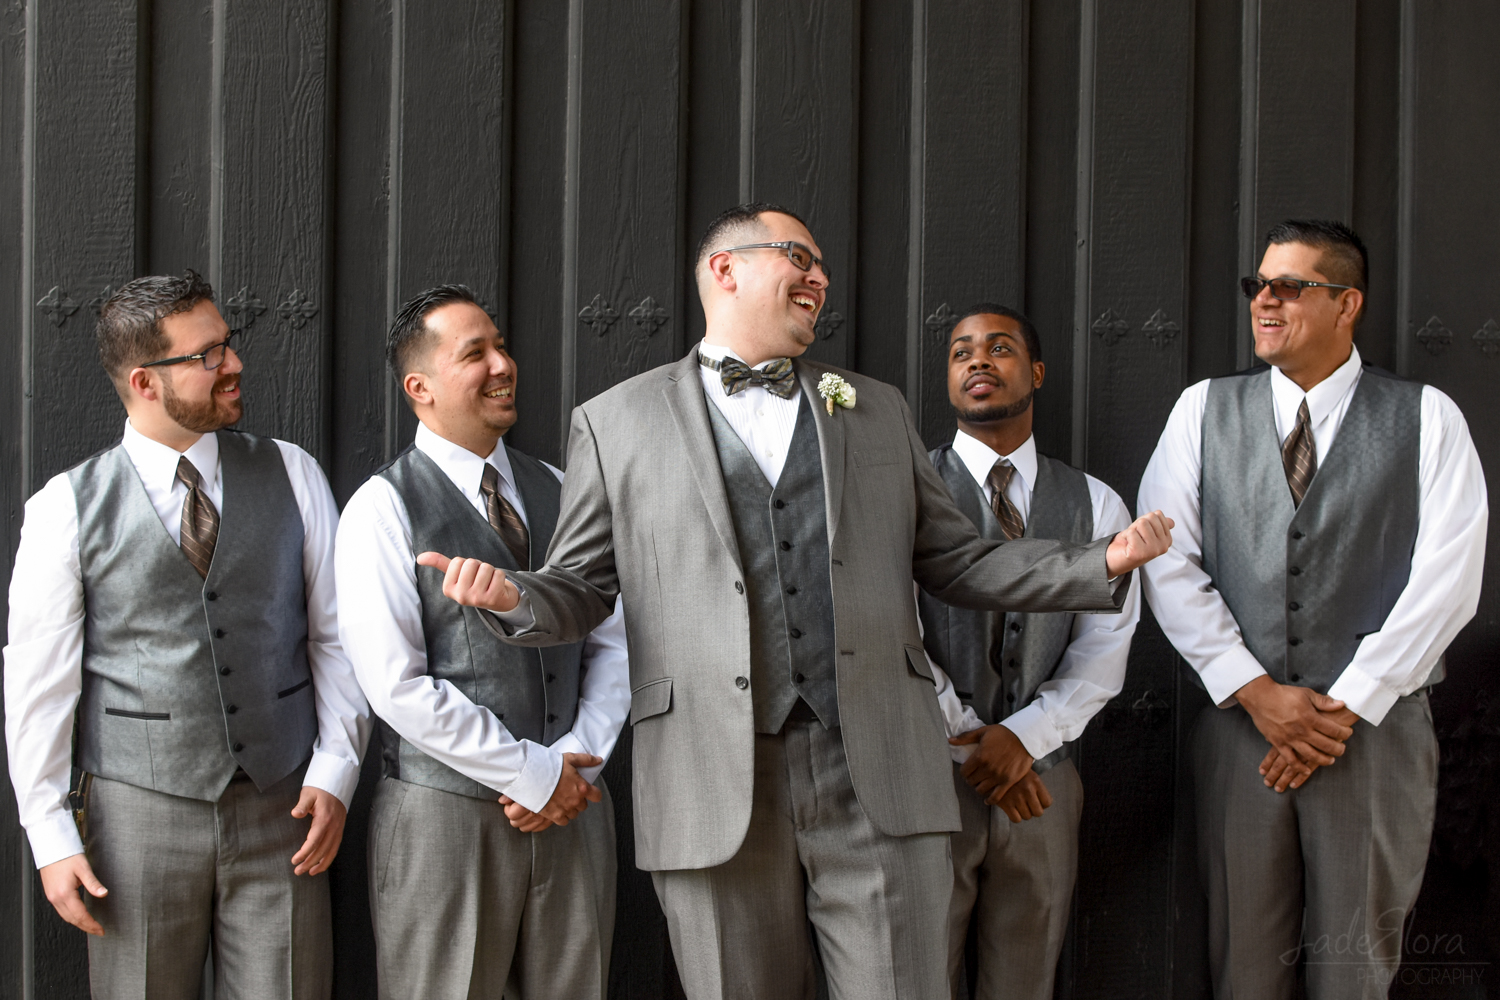 Fun Joking Groom with Groomsmen